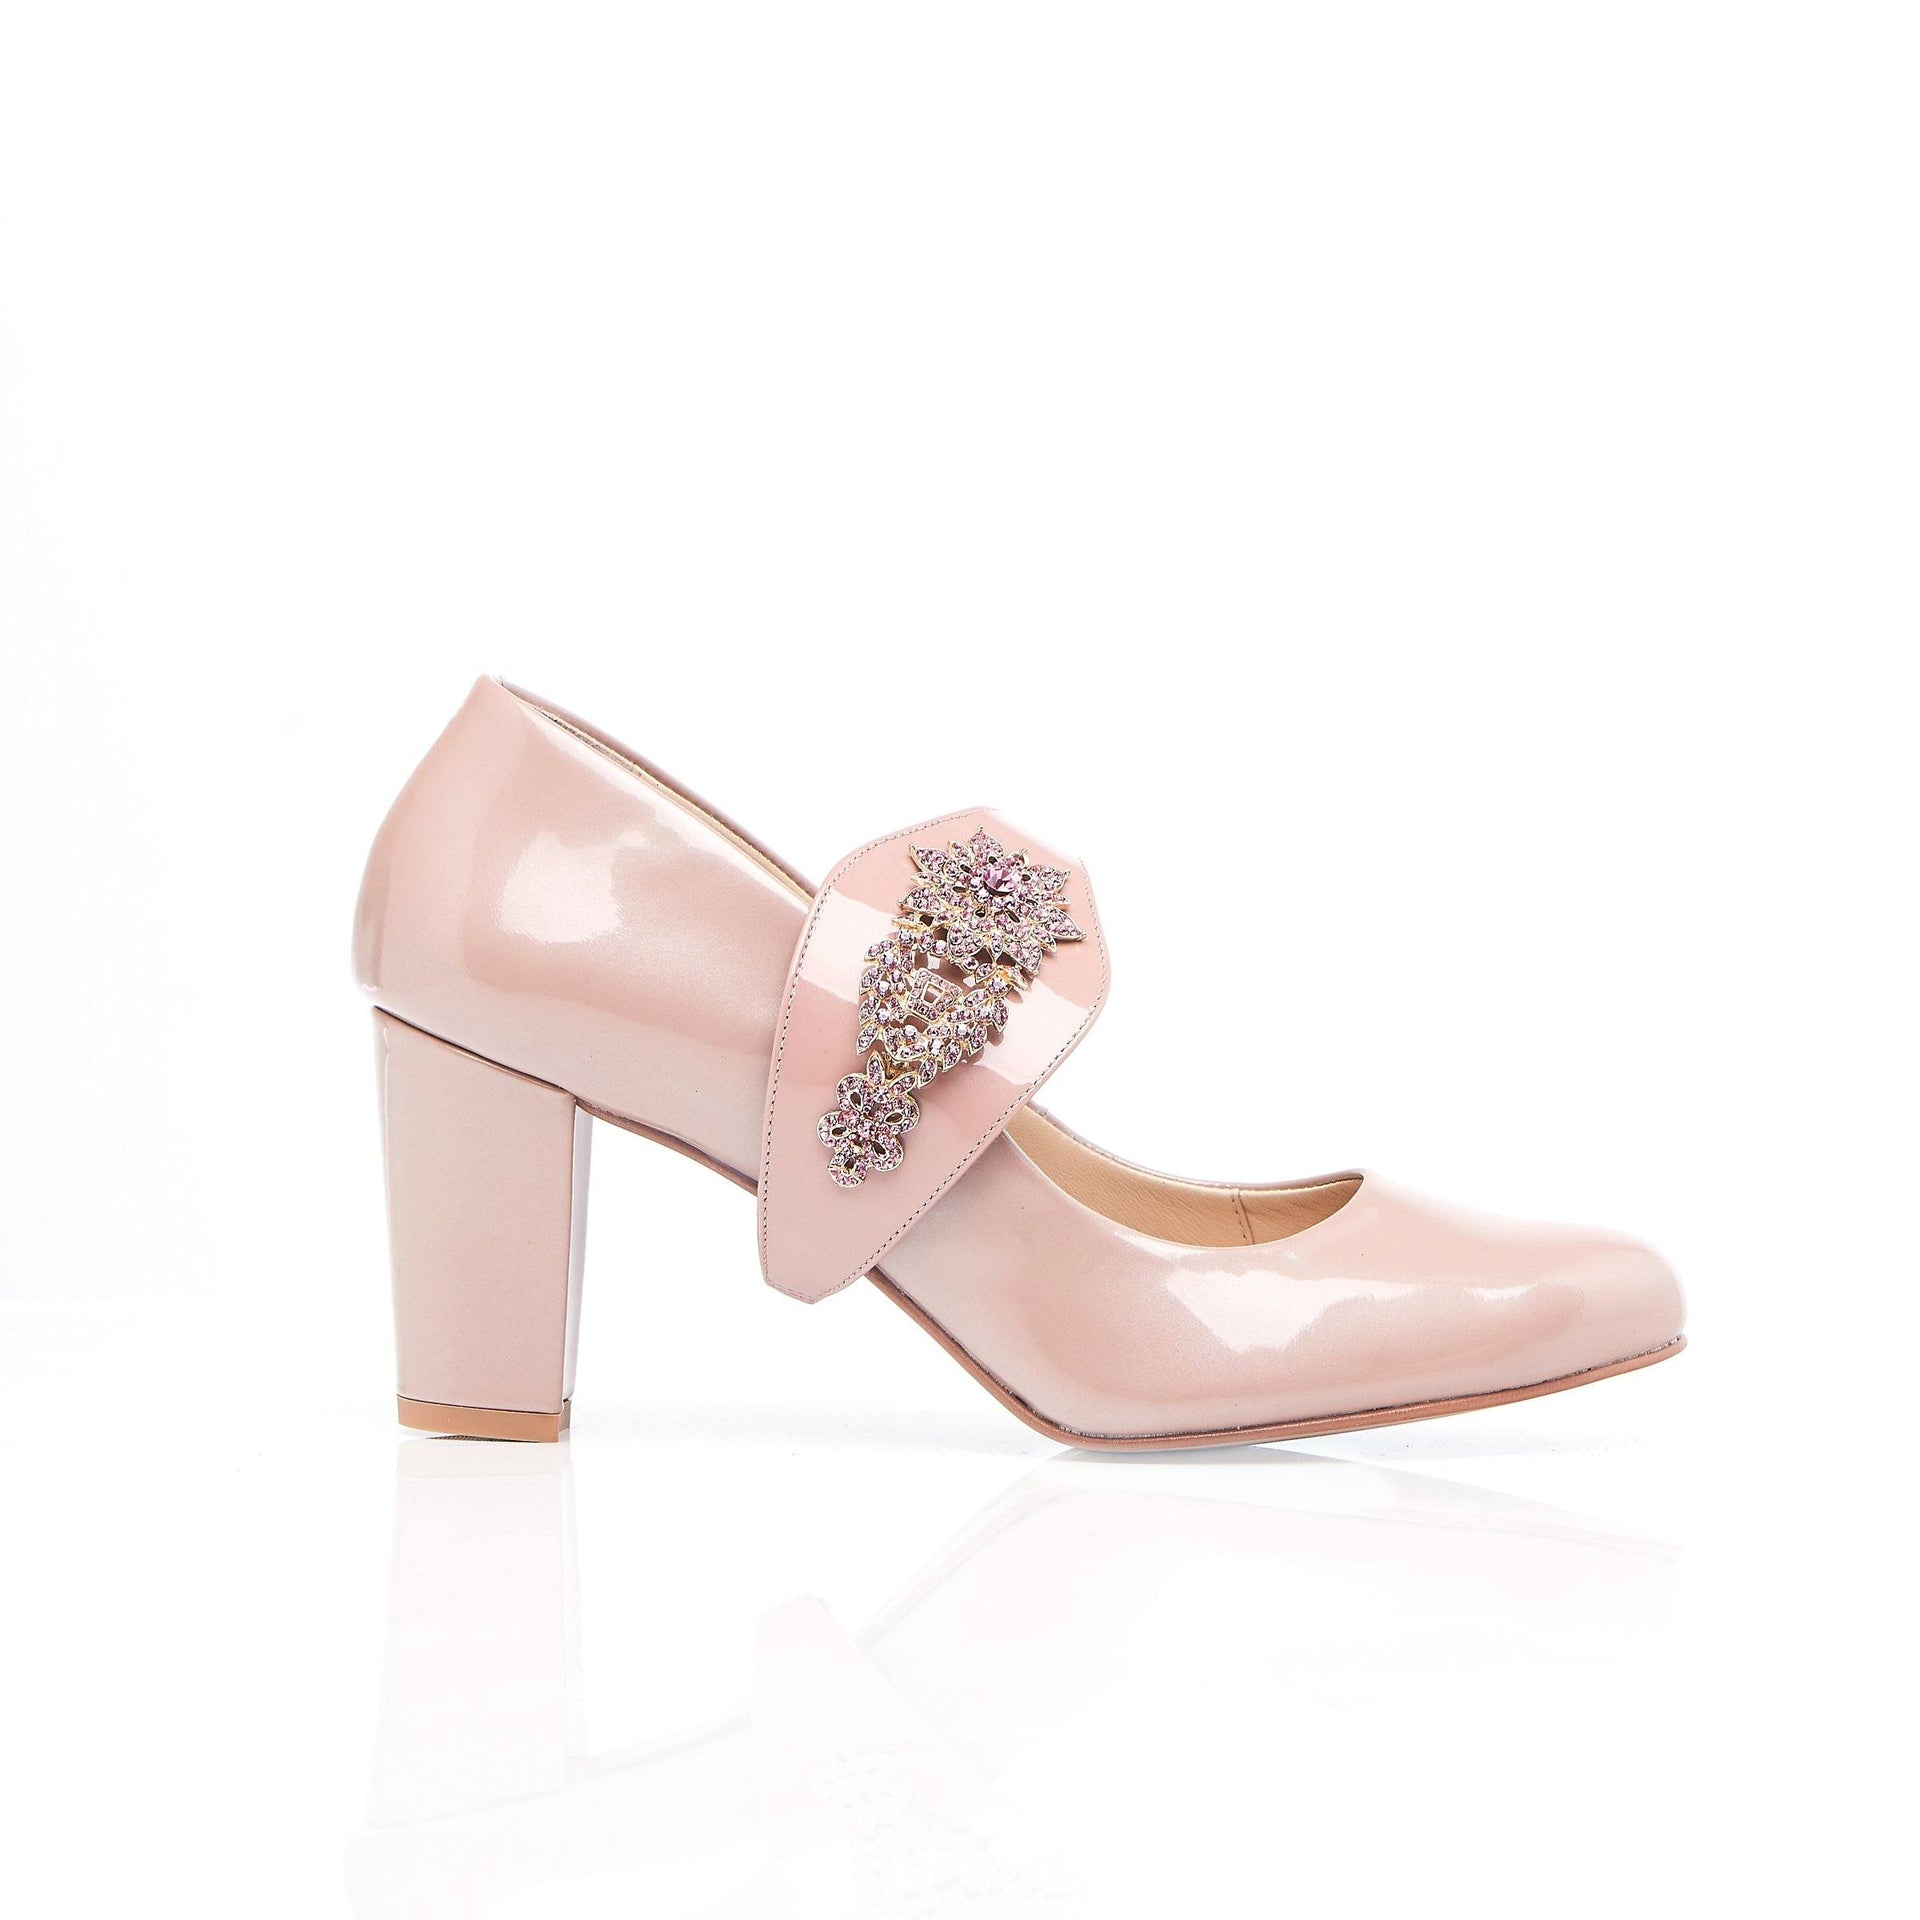 Block heel shoe with pink sparkle gems